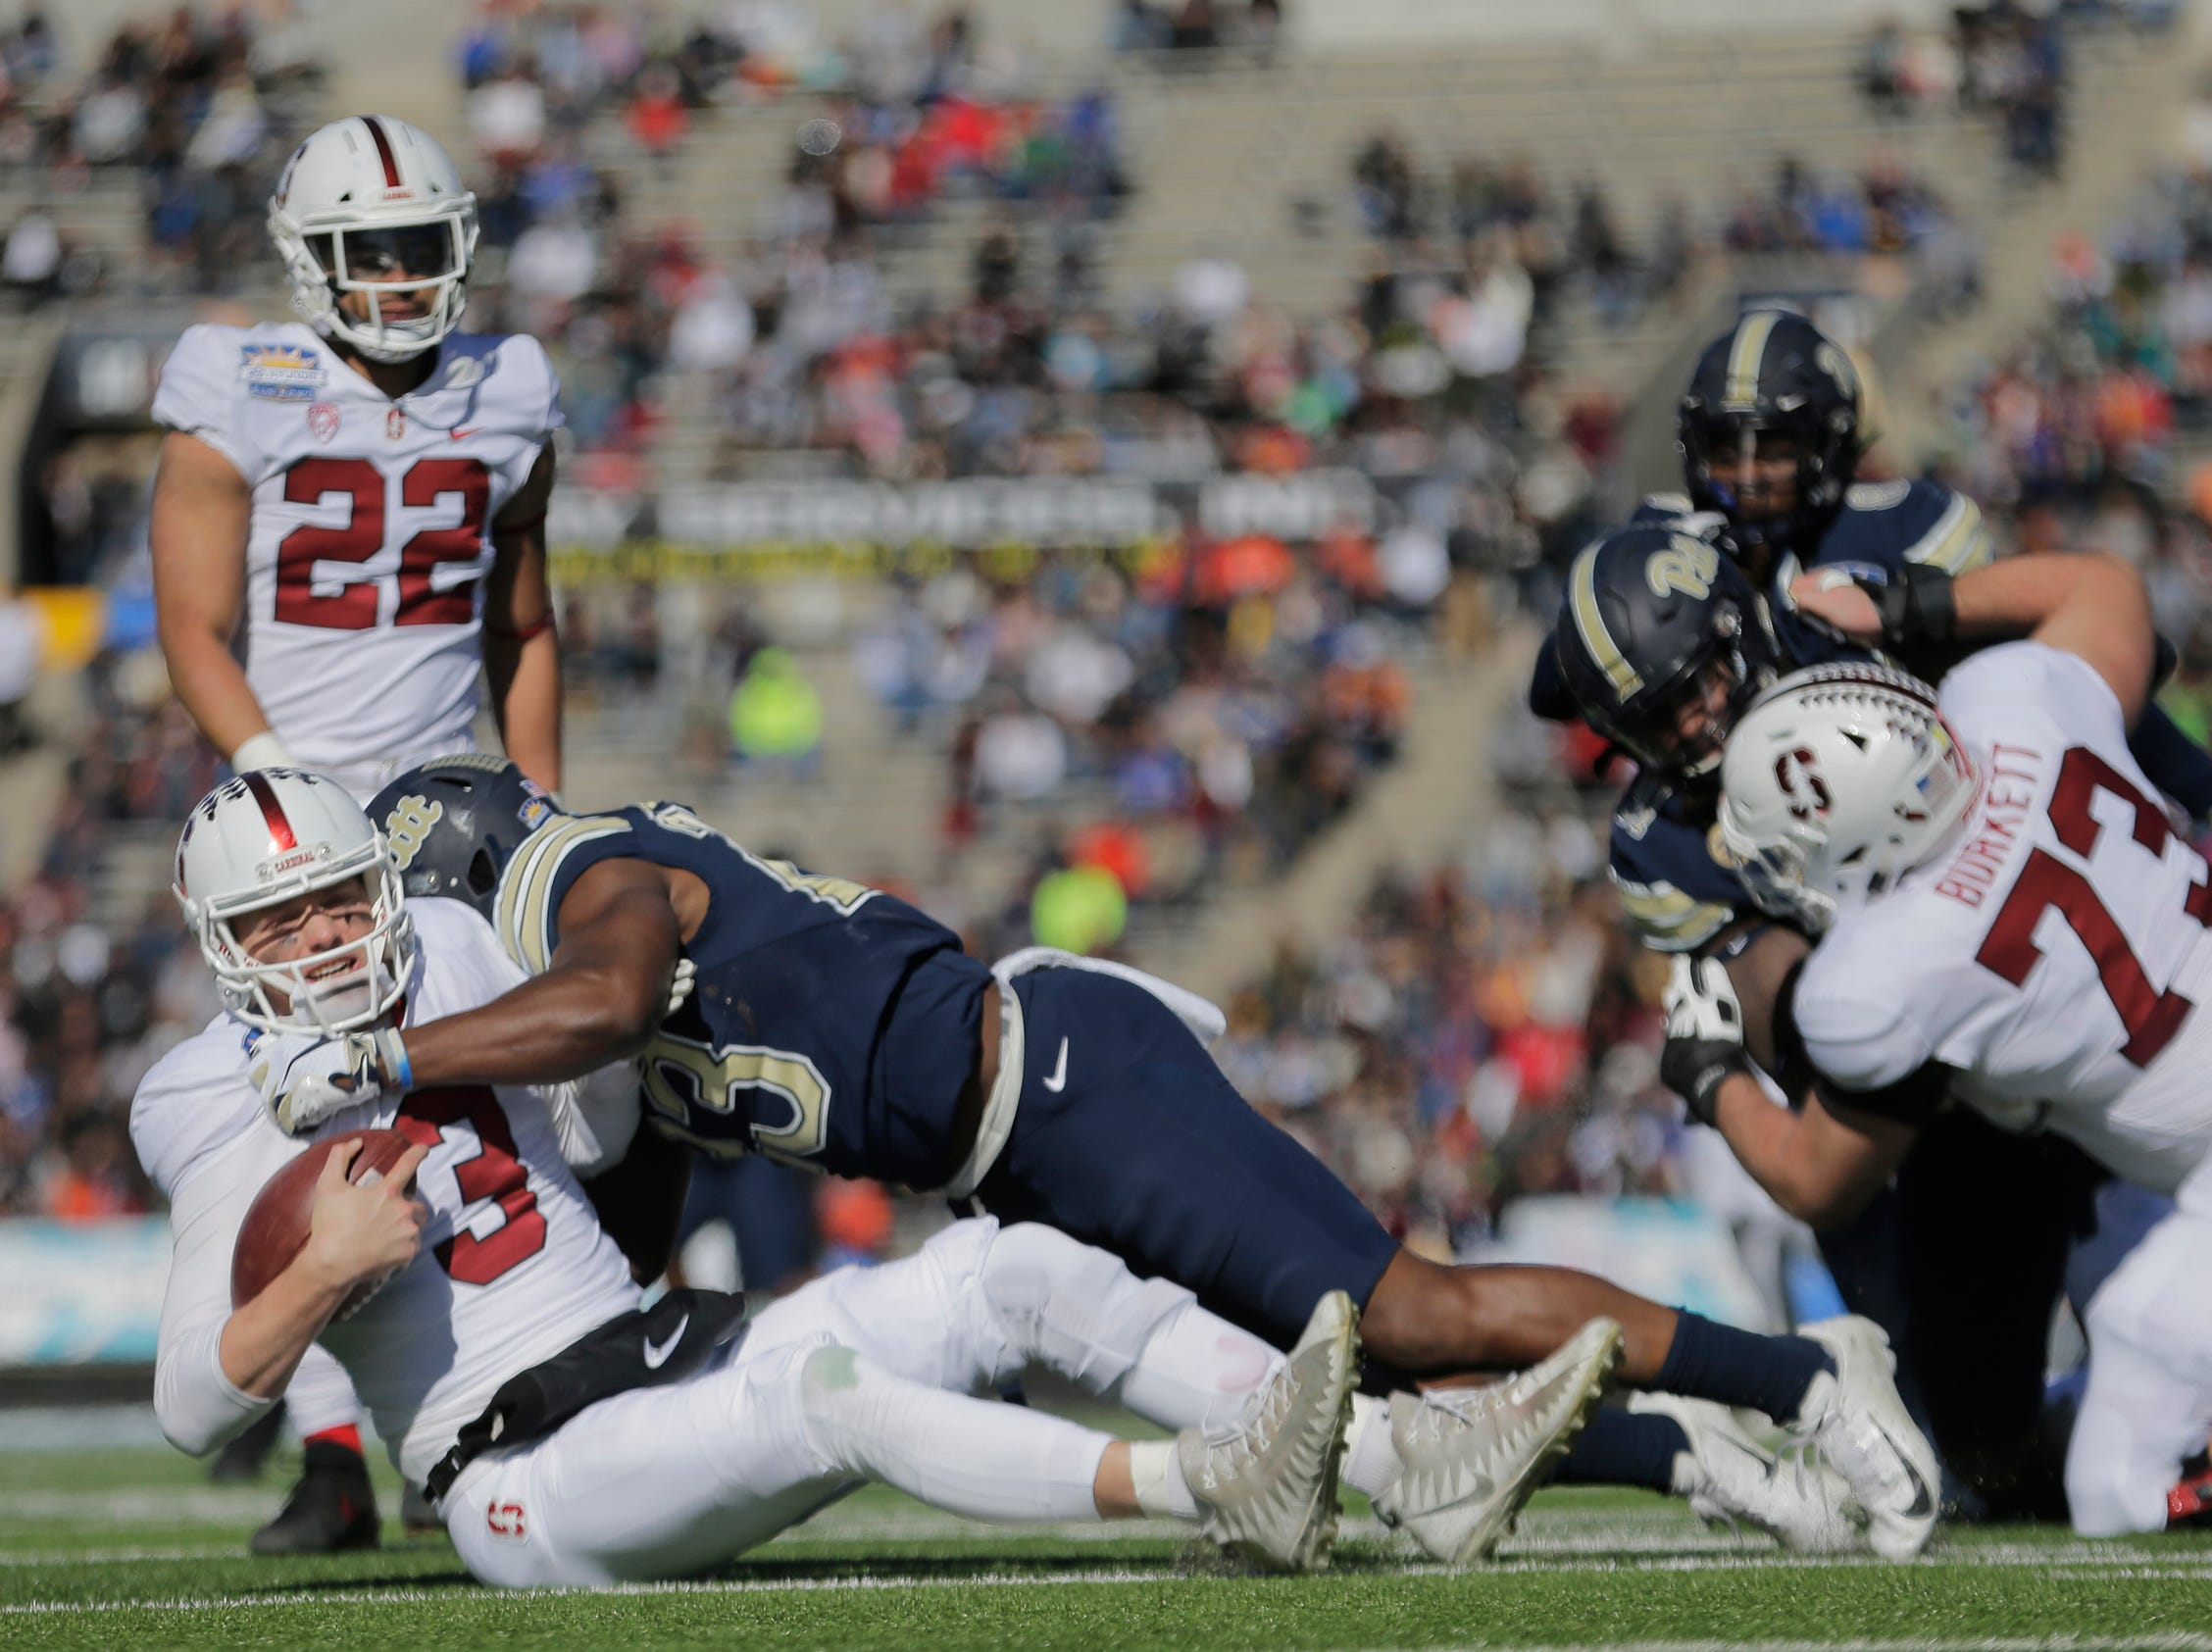 85th Hyundai Sun Bowl action featuring Pitt and Stanford.